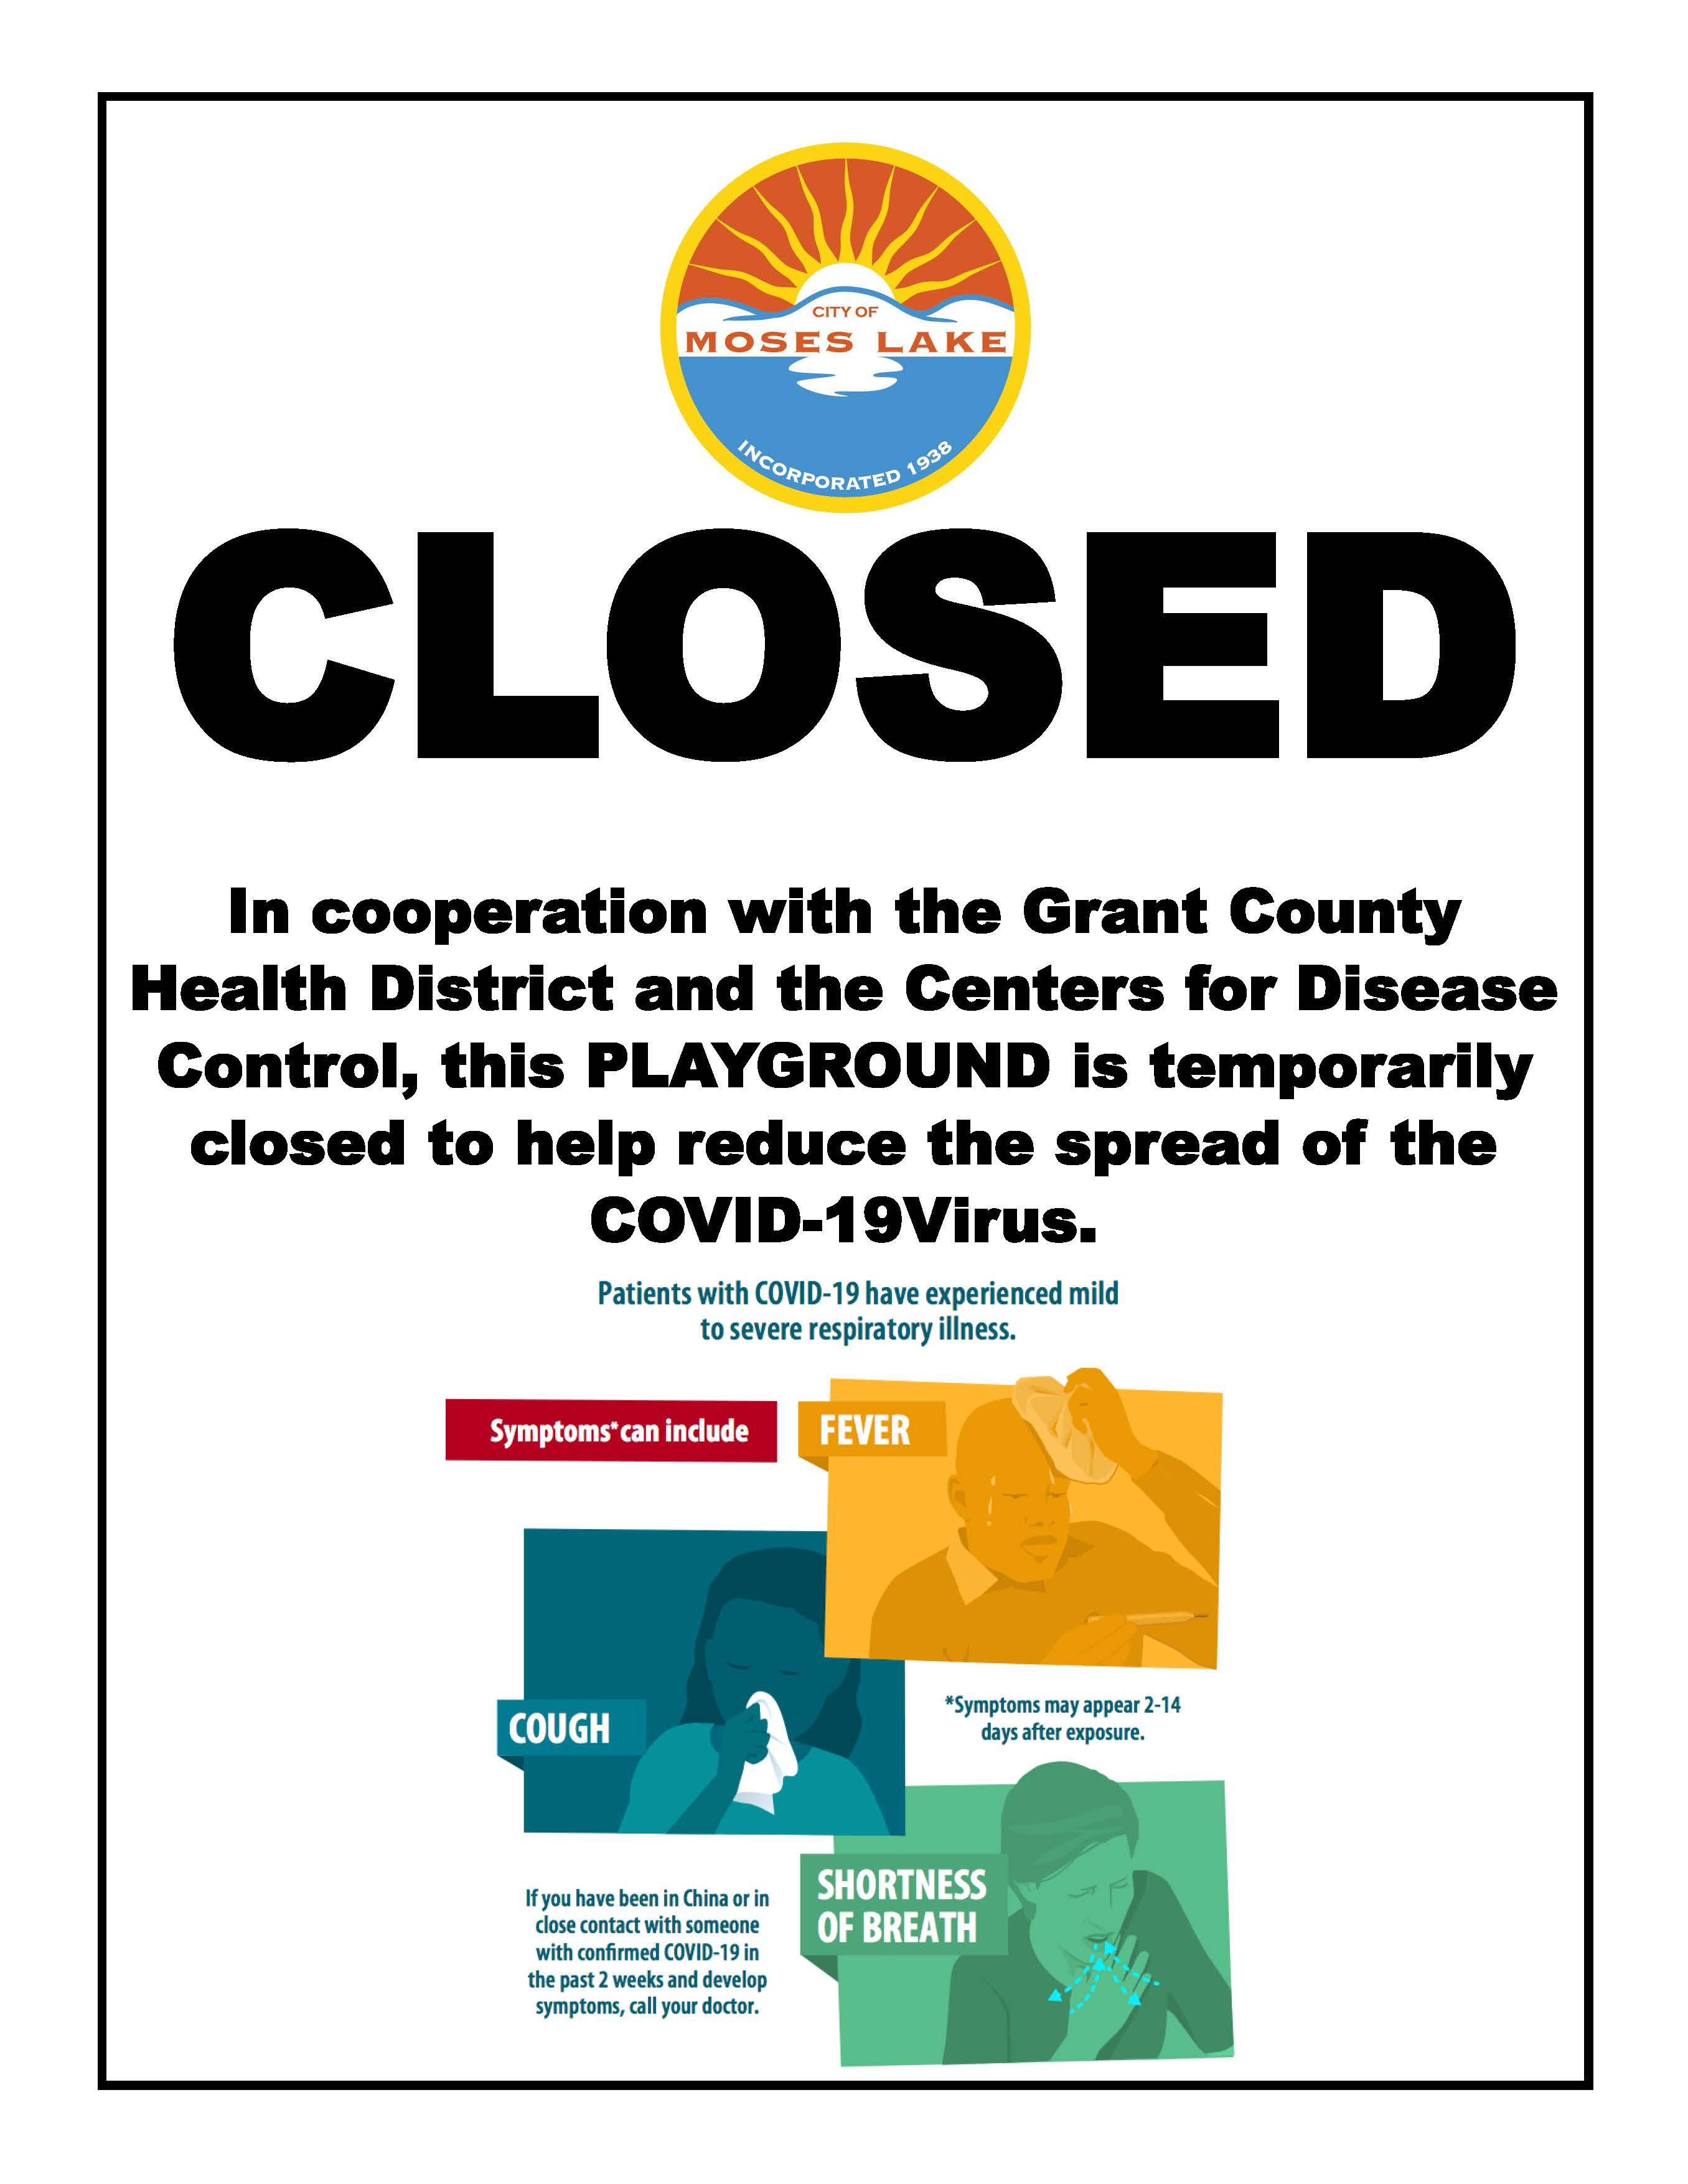 City parks are closed until further notice